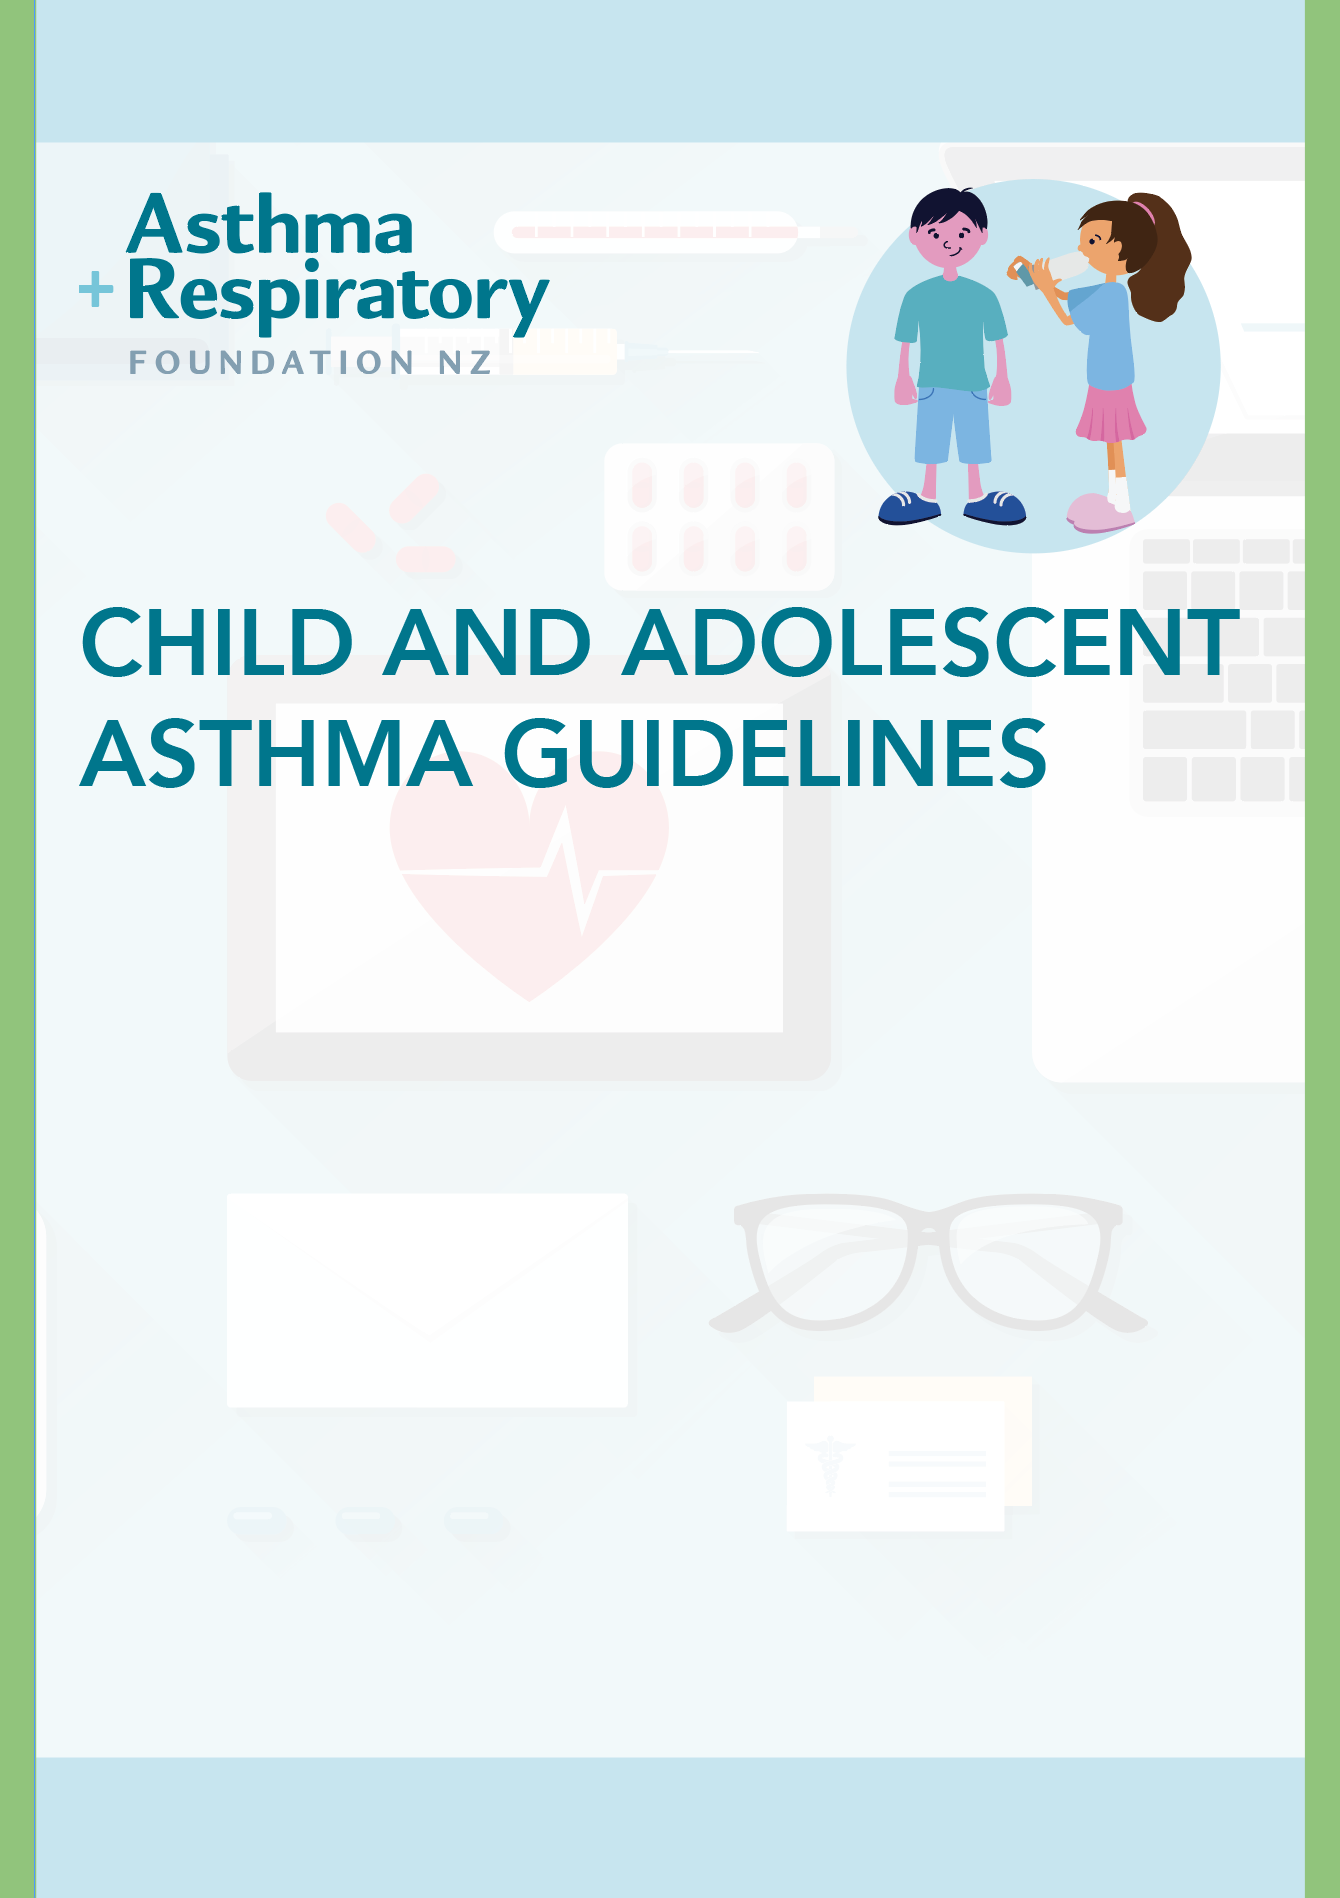 Child and Adolescent Asthma Guidelines